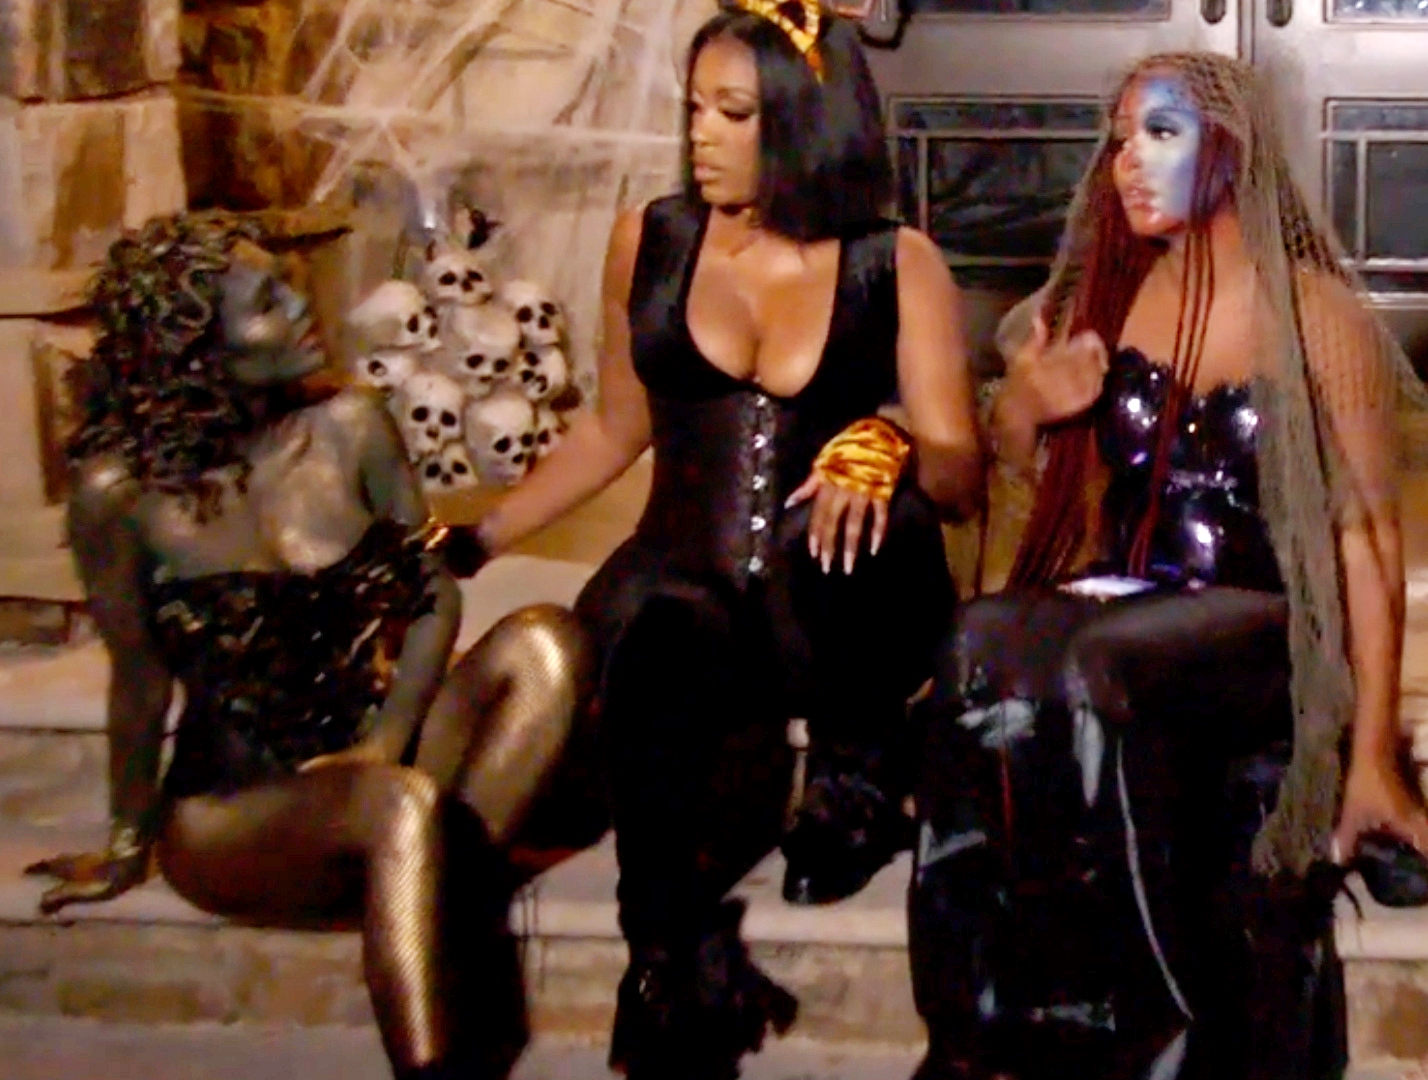 RHOA Recap: Kenya Confronts LaToya For Telling Her Business, Halloween Party Turns Chaotic As Falynn And Latoya Fight